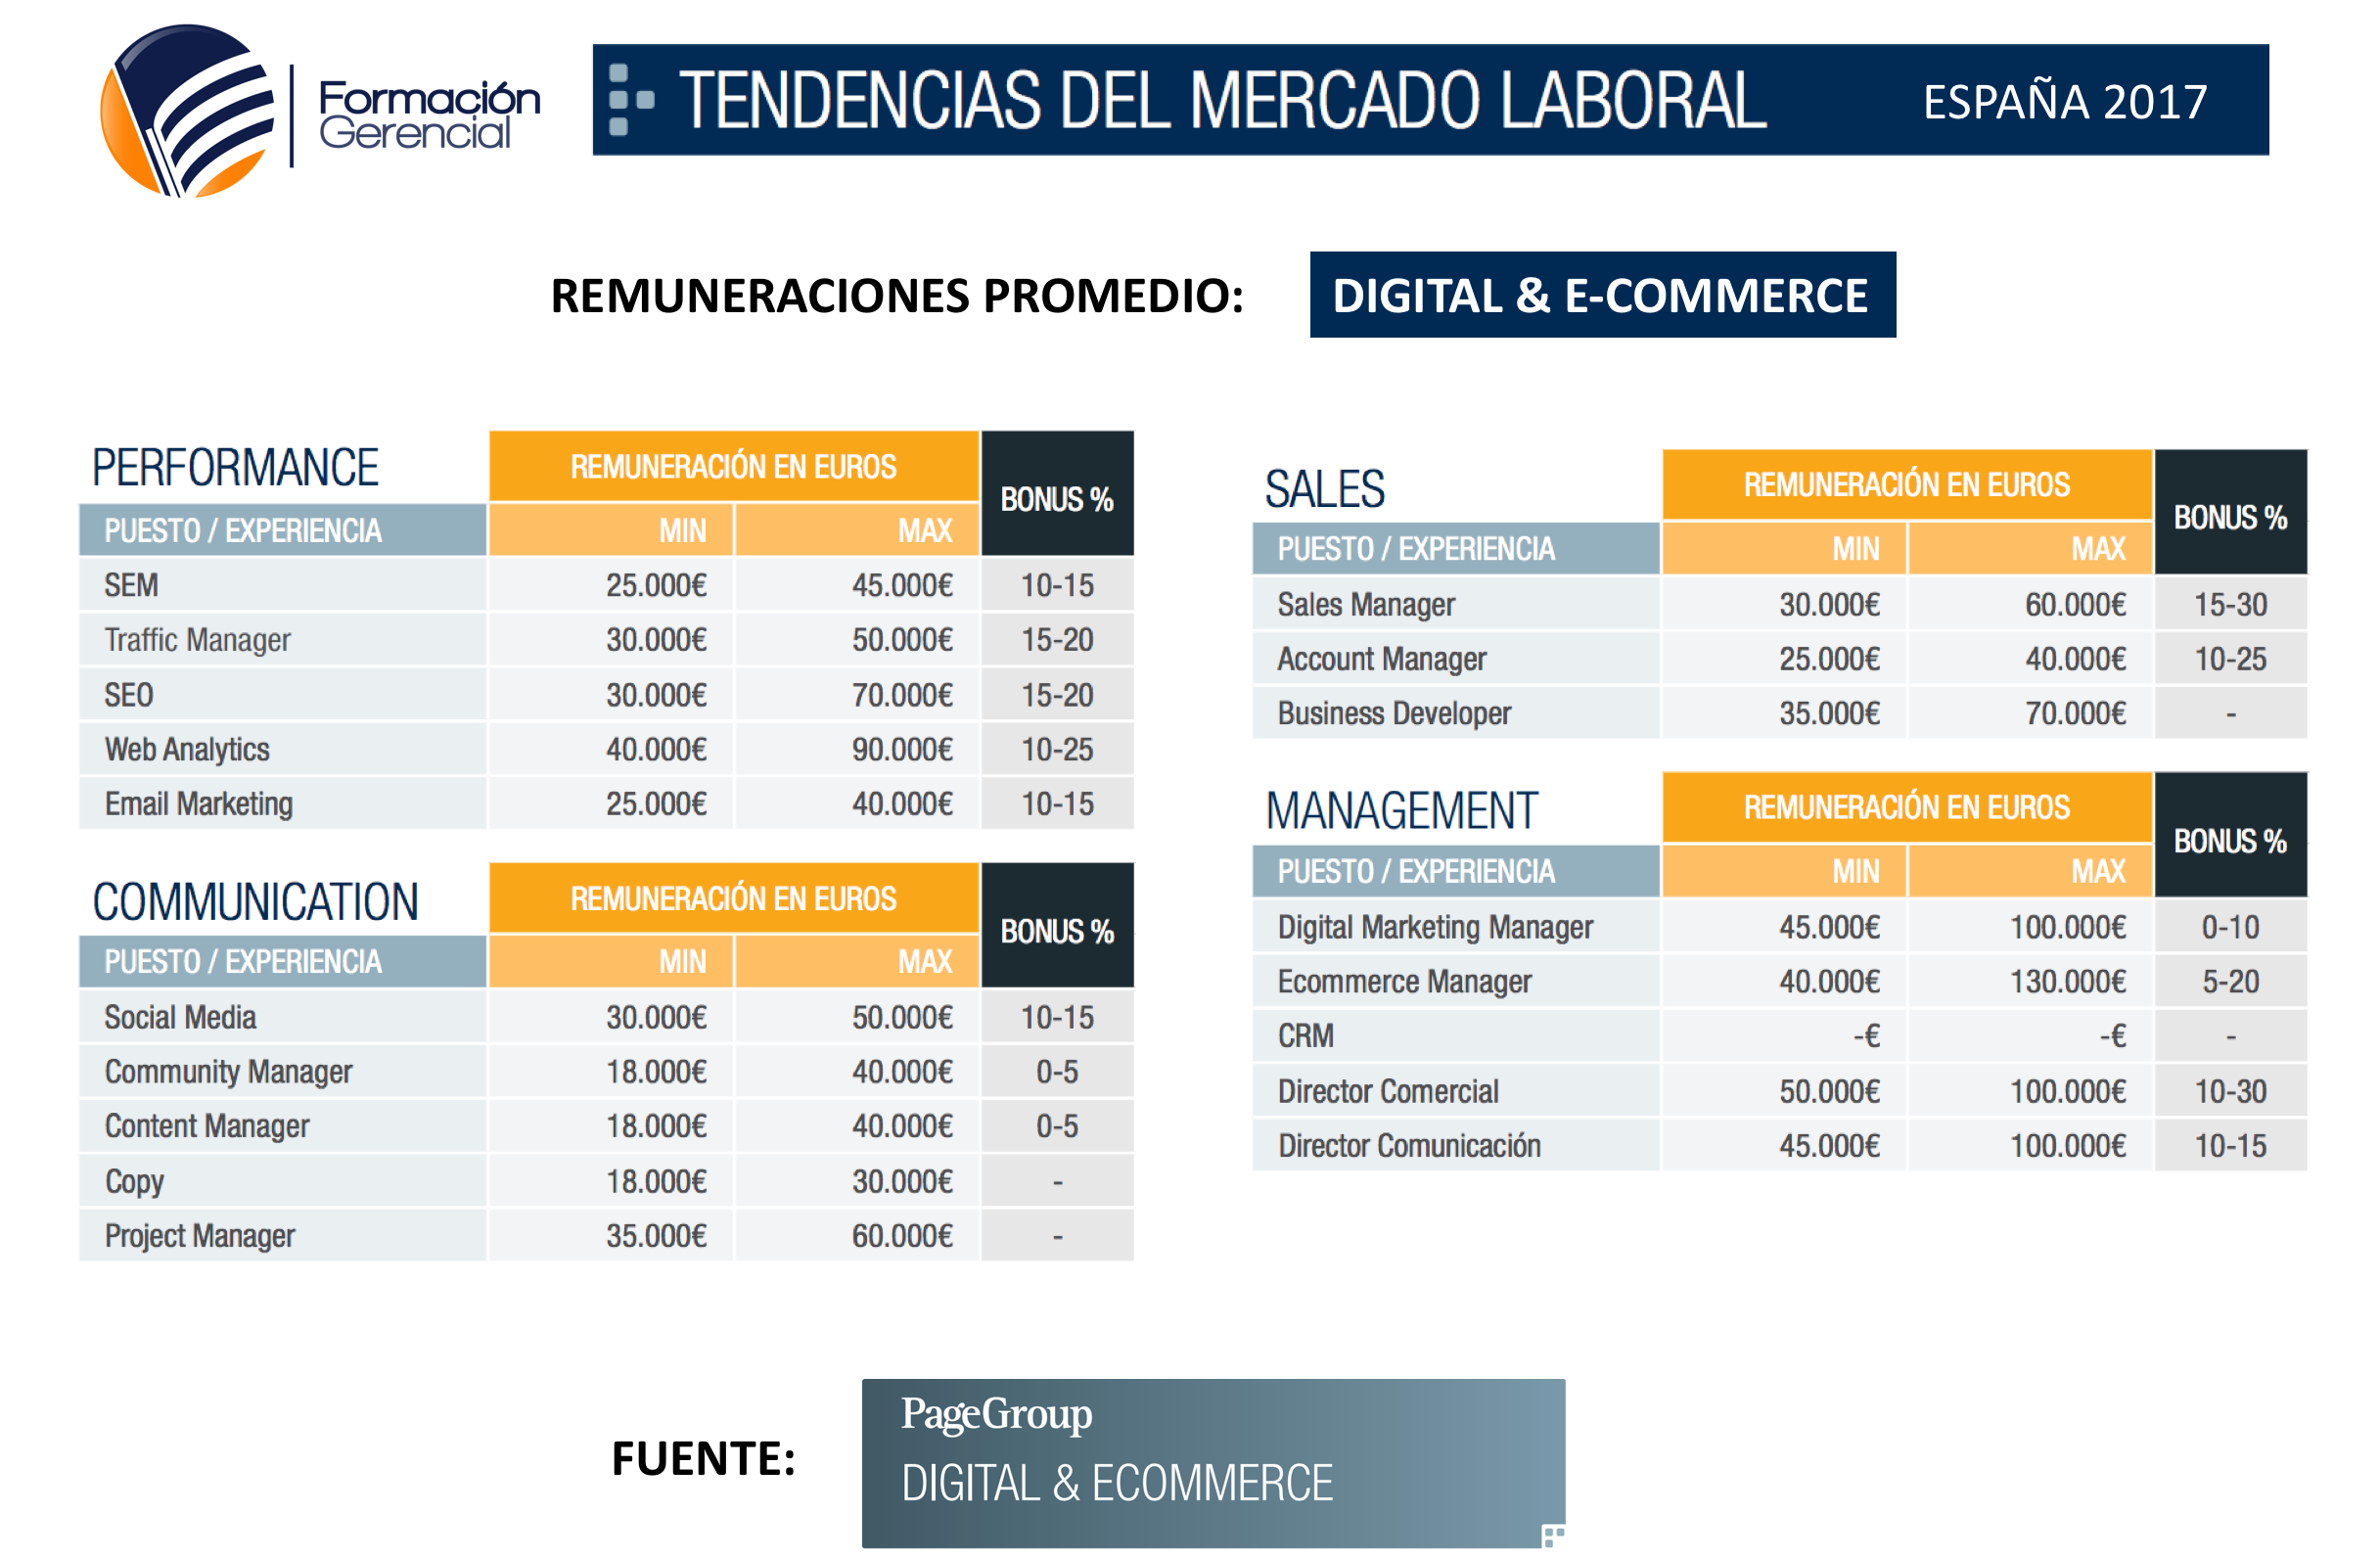 Tendencias Mercado Laboral Gestión Digital Marketing Digital Ecommerce 2017